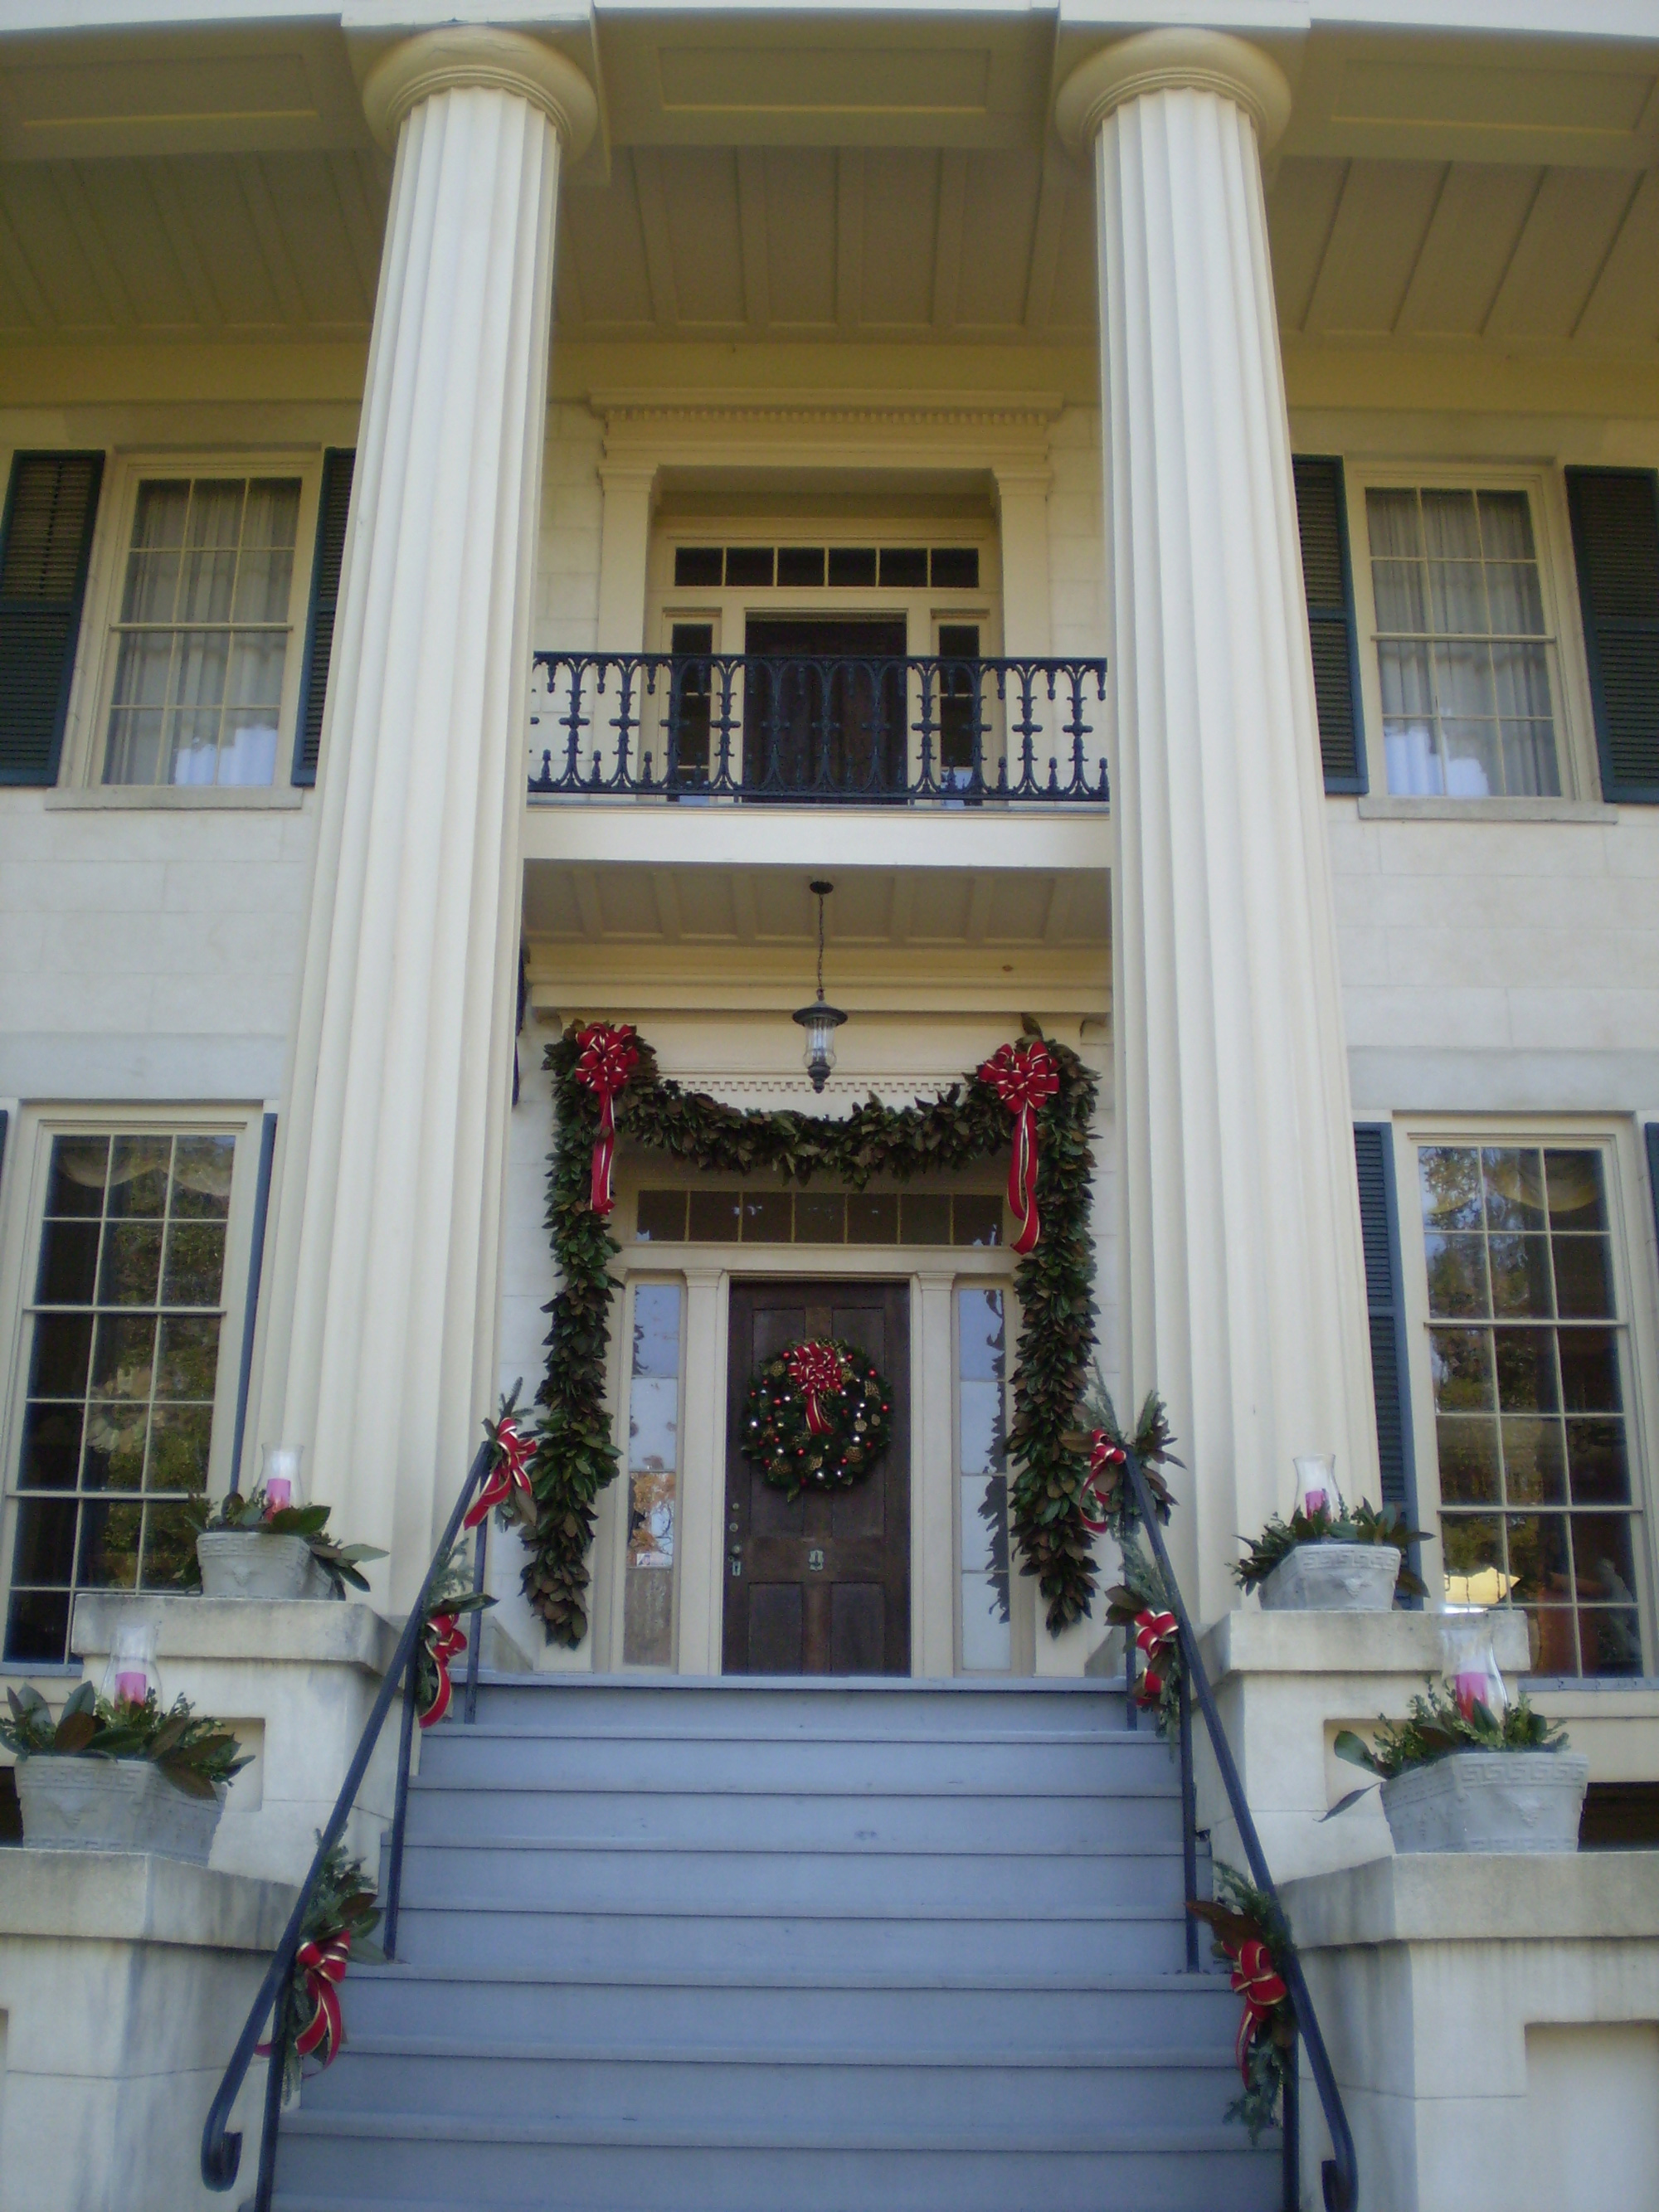 Milledgeville's Rose Hill decorated for the holidays